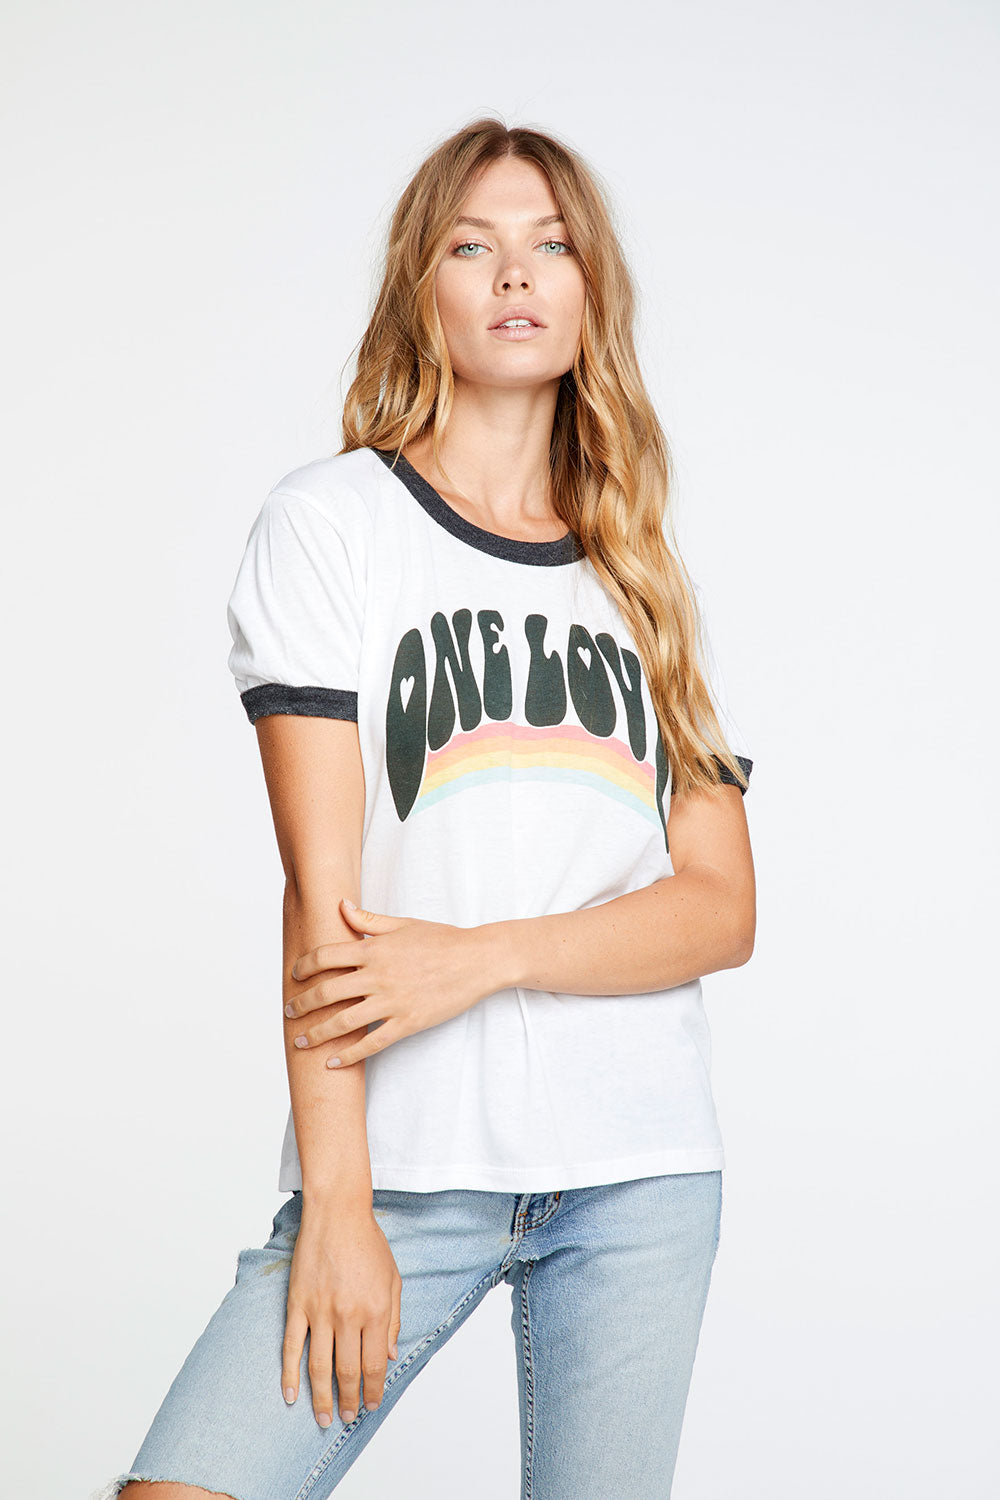 One Love Crew Neck Tee Recycled chaserbrand4.myshopify.com